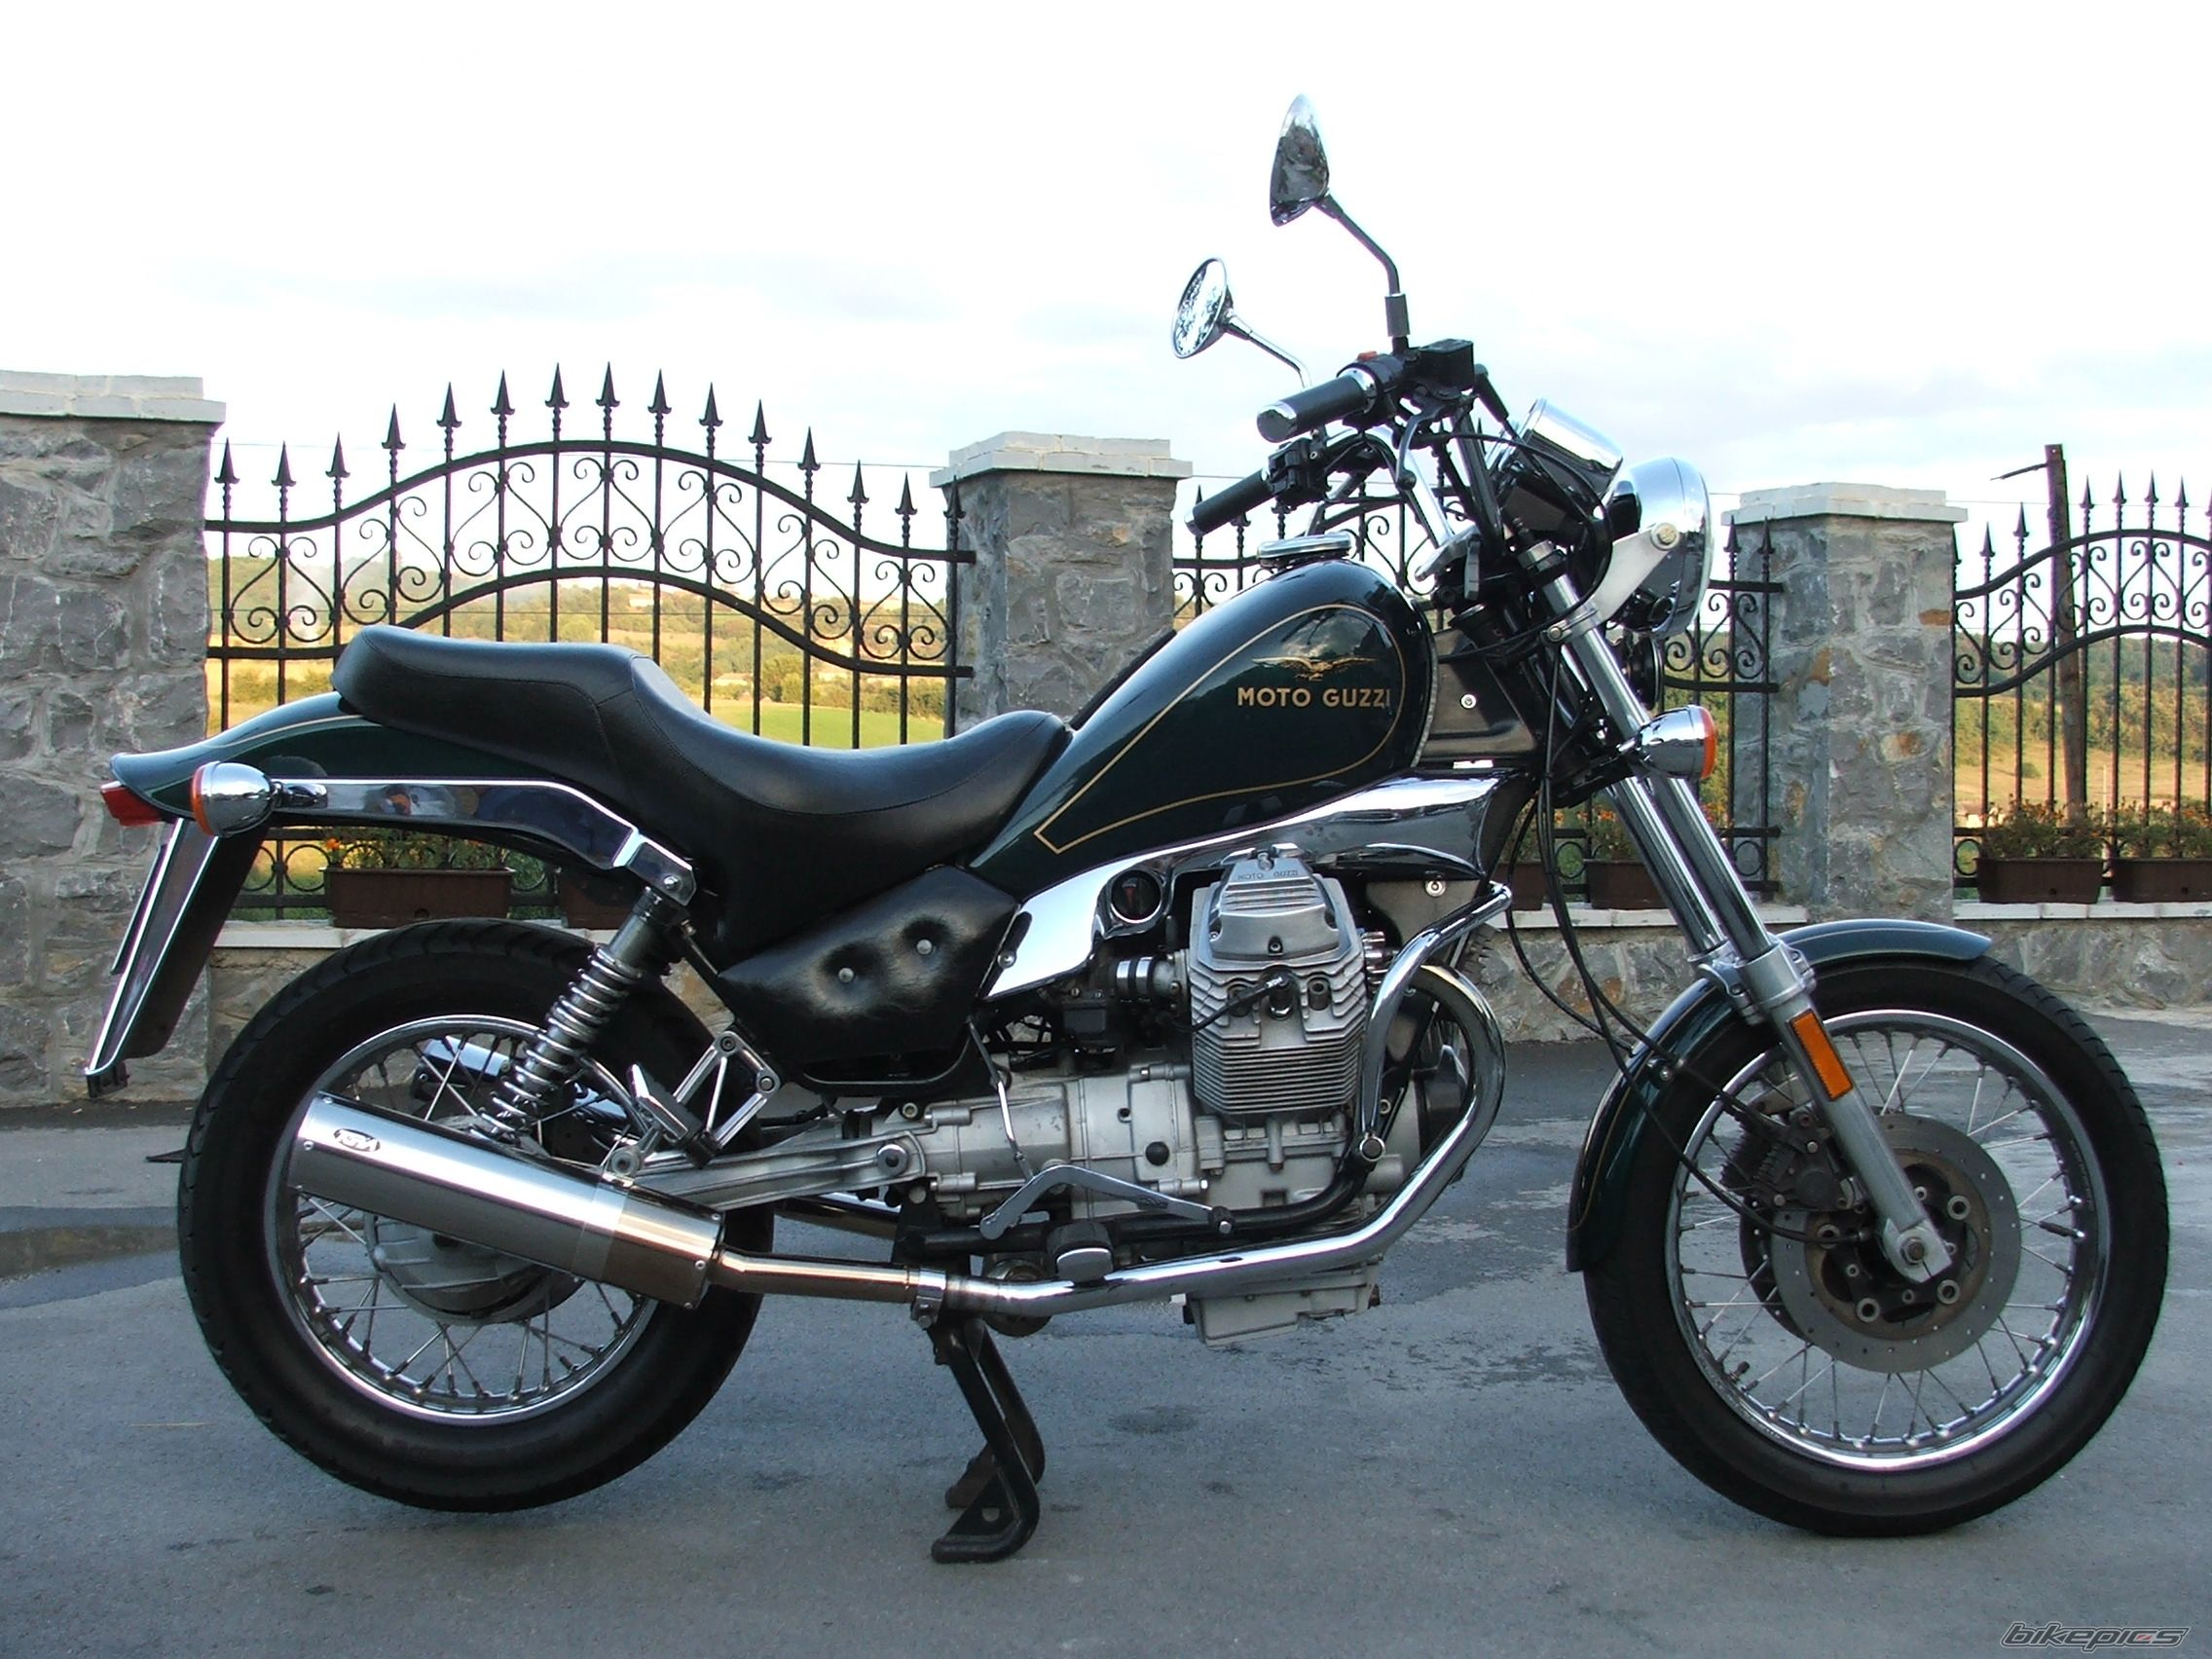 1998 moto guzzi nevada 750 pics specs and information. Black Bedroom Furniture Sets. Home Design Ideas